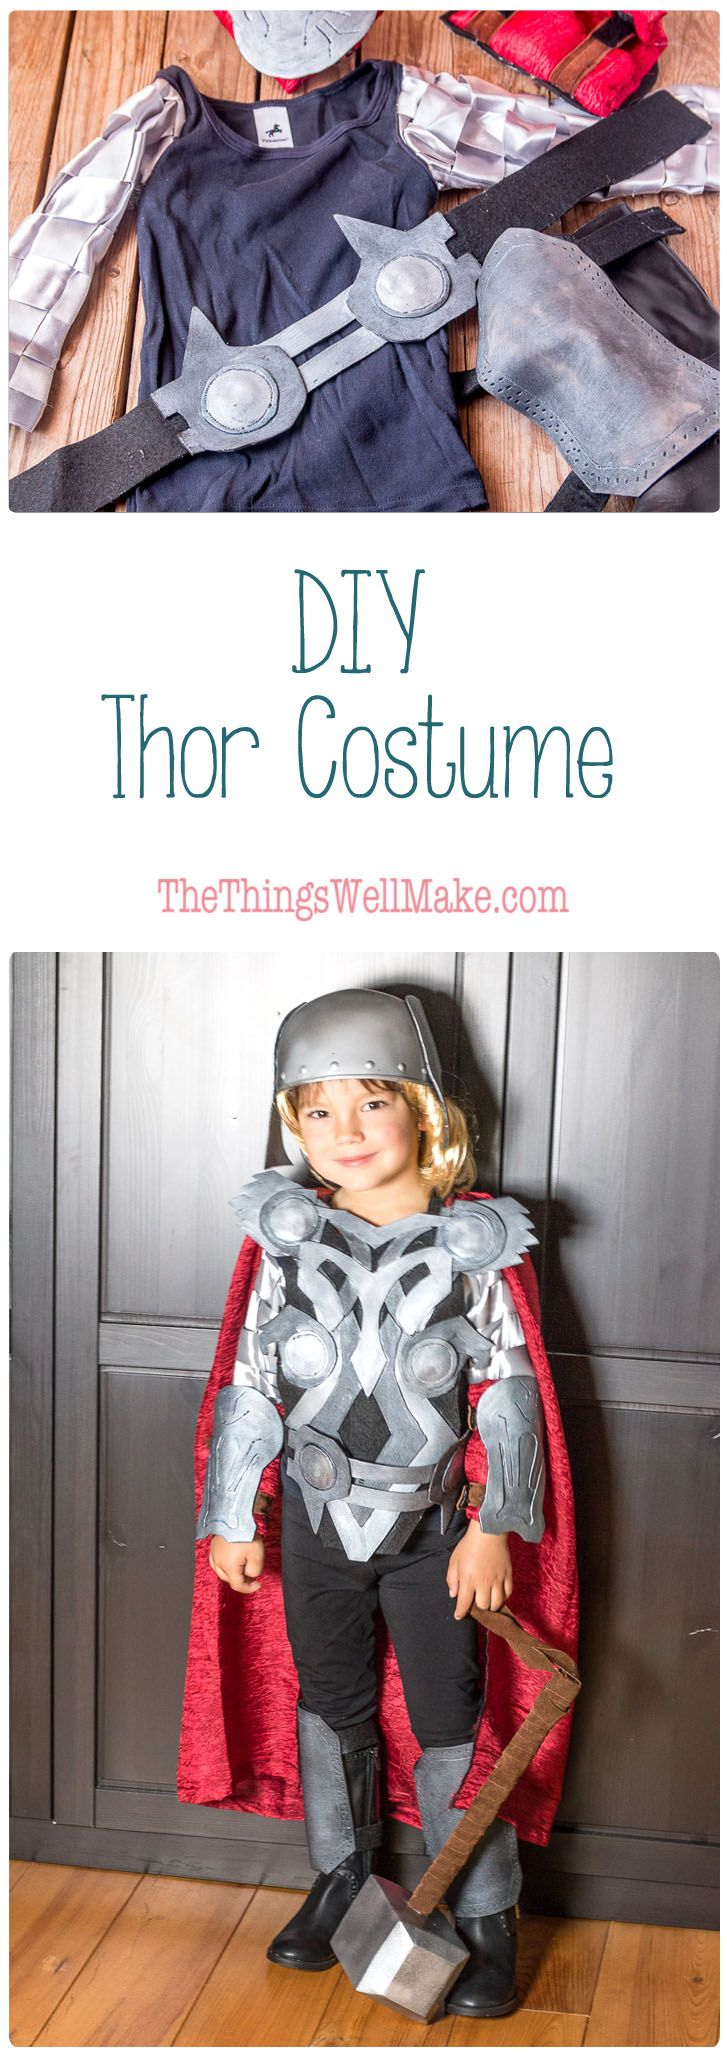 With a bit of hot glue, craft foam, felt, and paint, you can whip out this fun DIY Thor costume complete with a homemade hammer, vambraces, and helmet. via @thethingswellmake